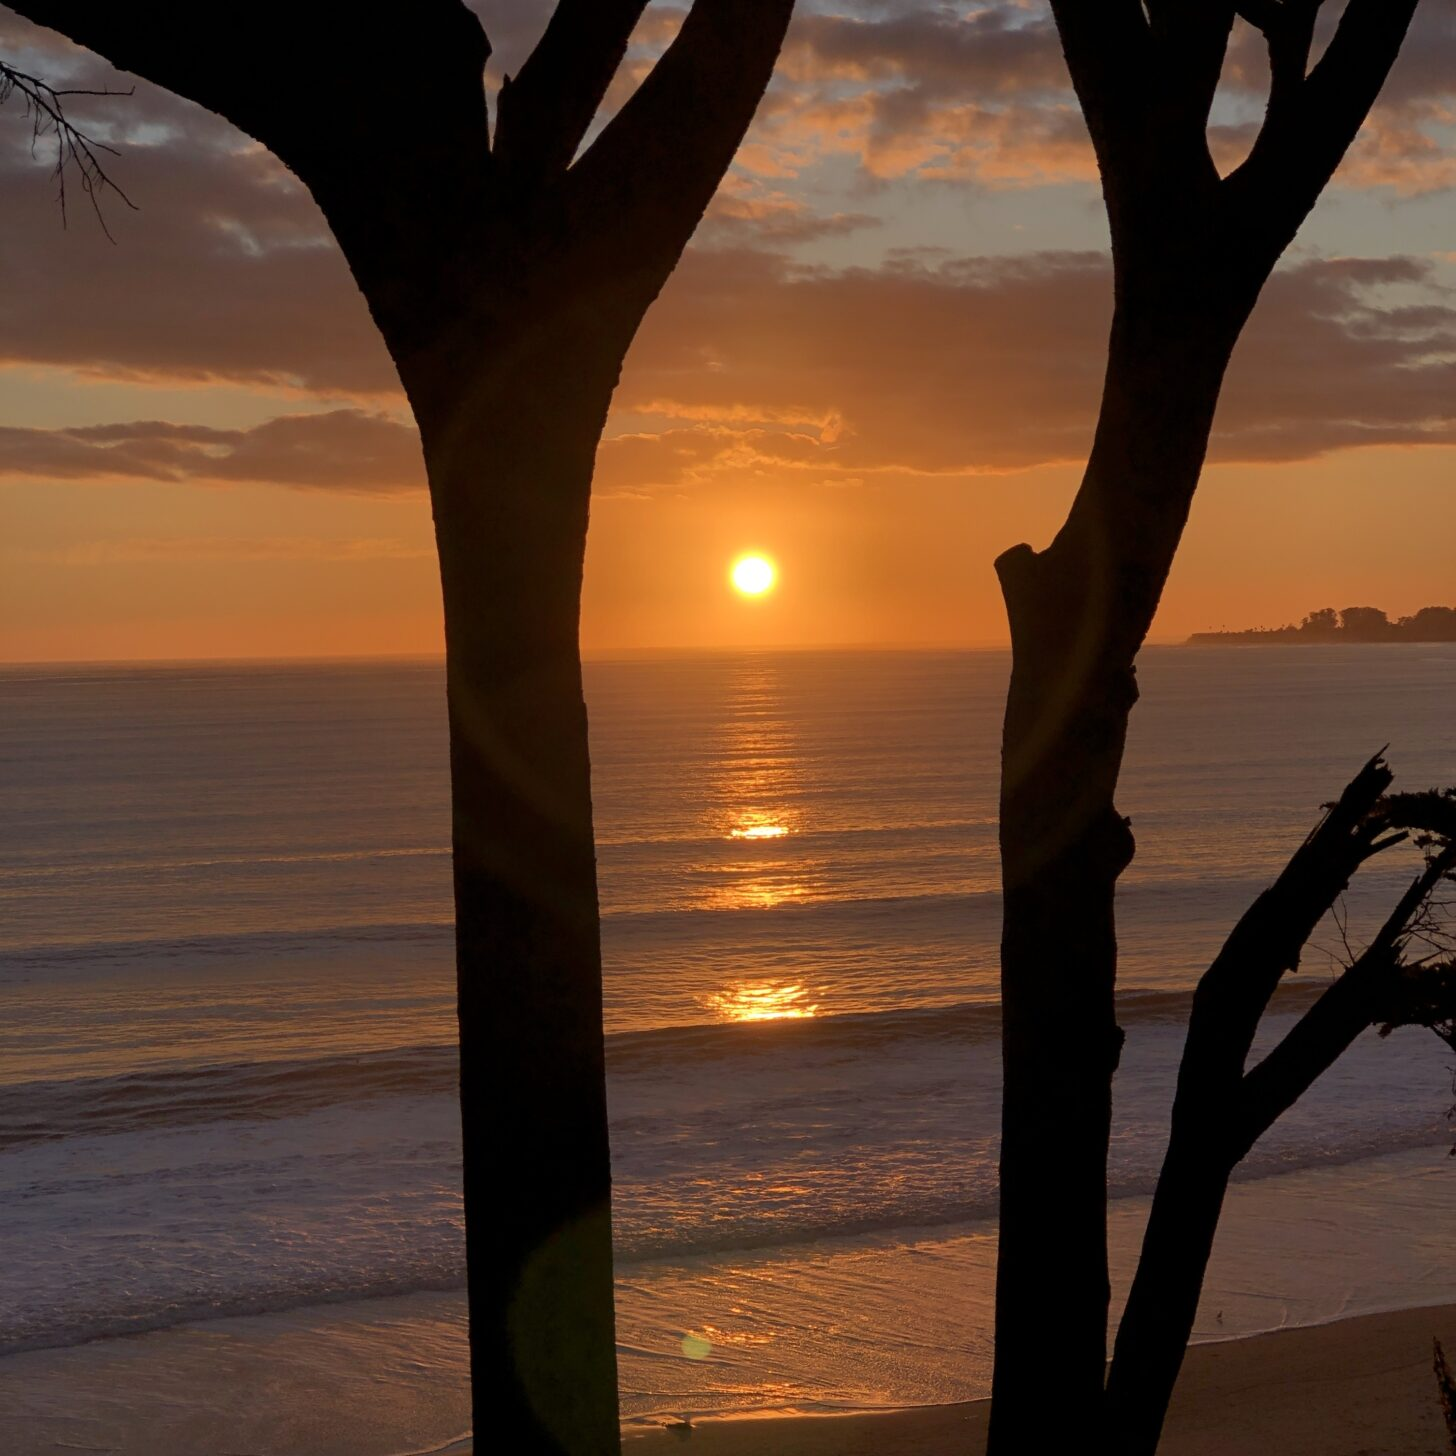 Image of the sun setting over the ocean with tree trunks and waves in the forground